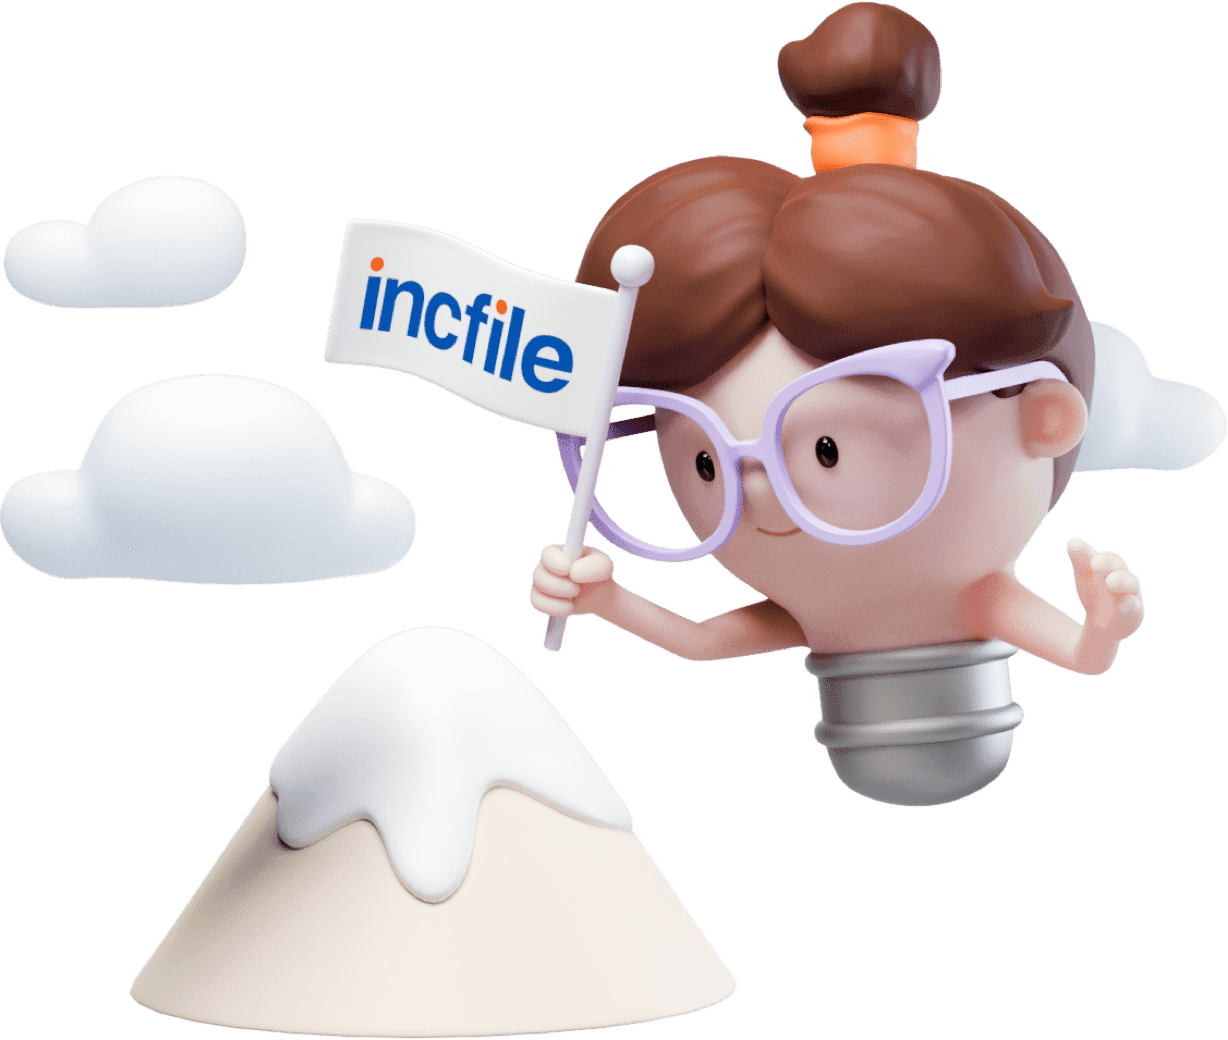 Wrapping Up and Incorporating with Incfile